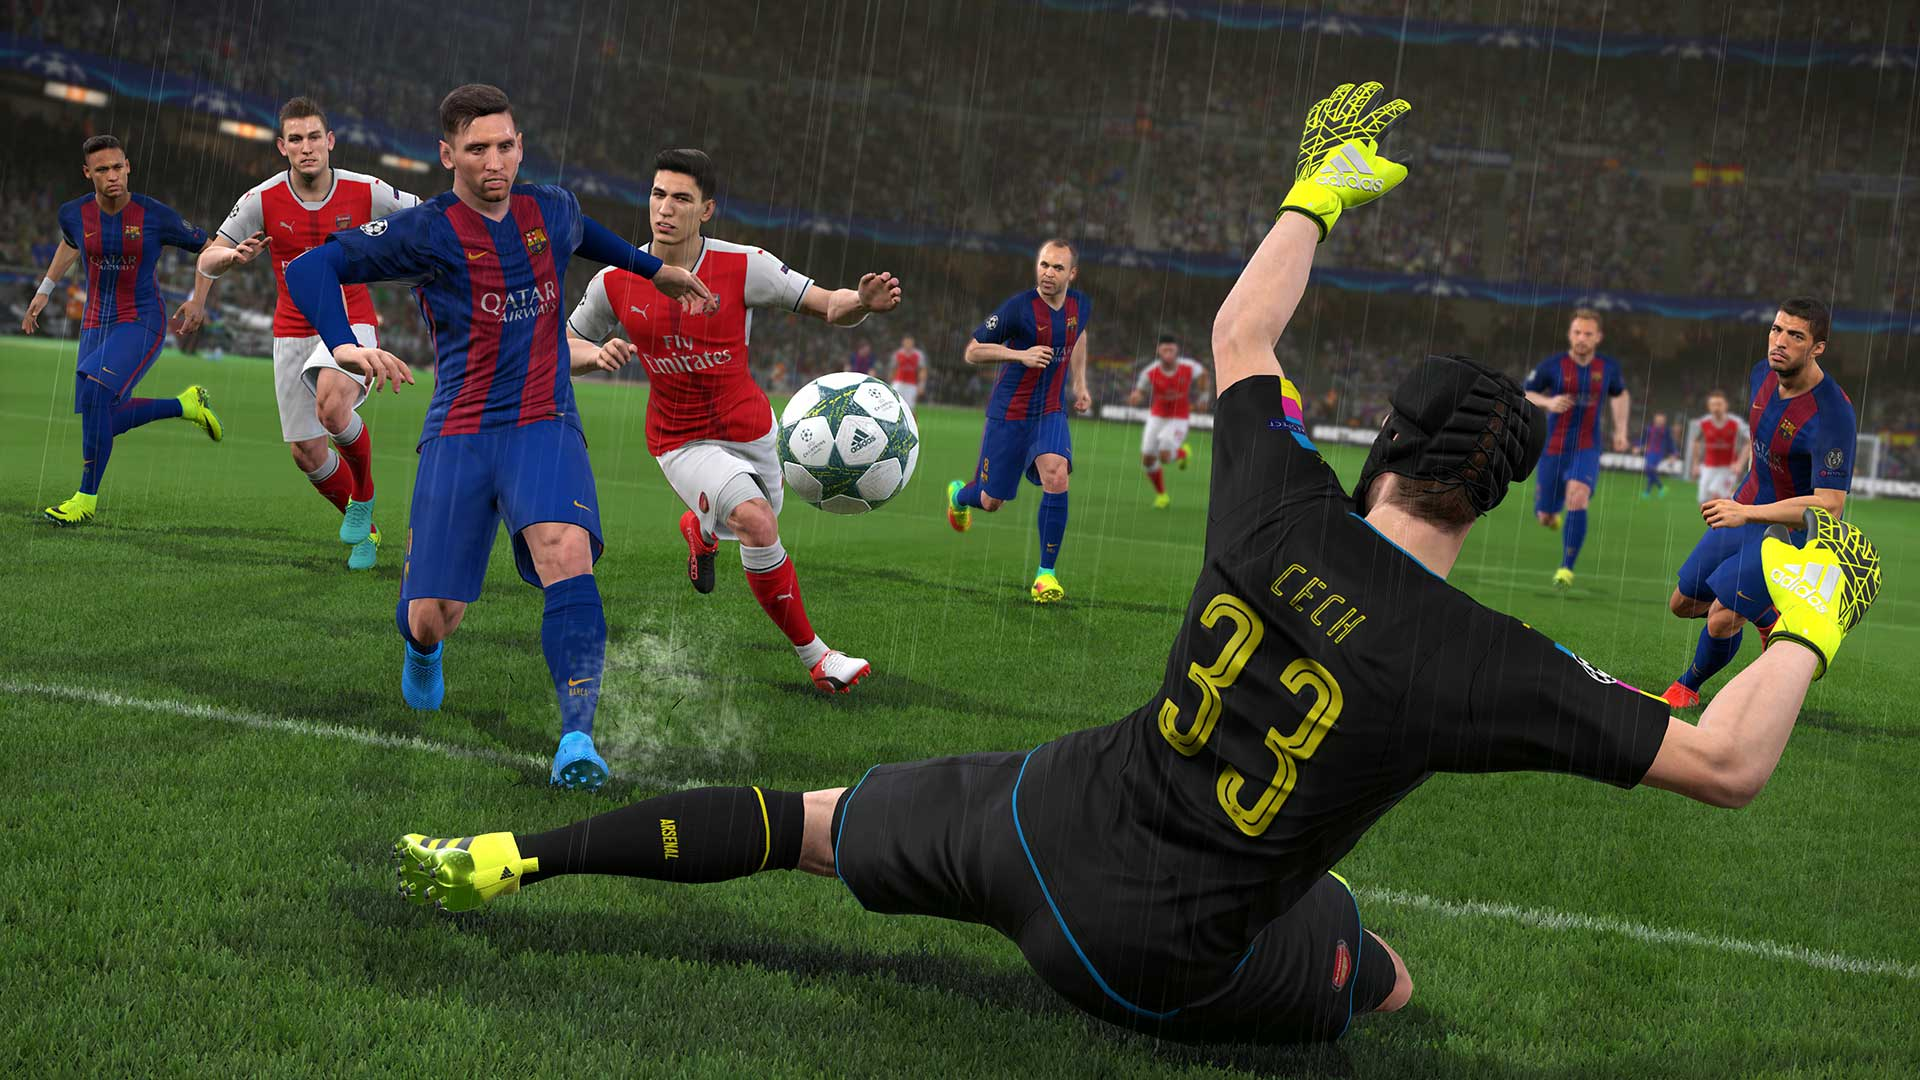 pes-2017-messi-vs-arsenal-pes-kings-edition